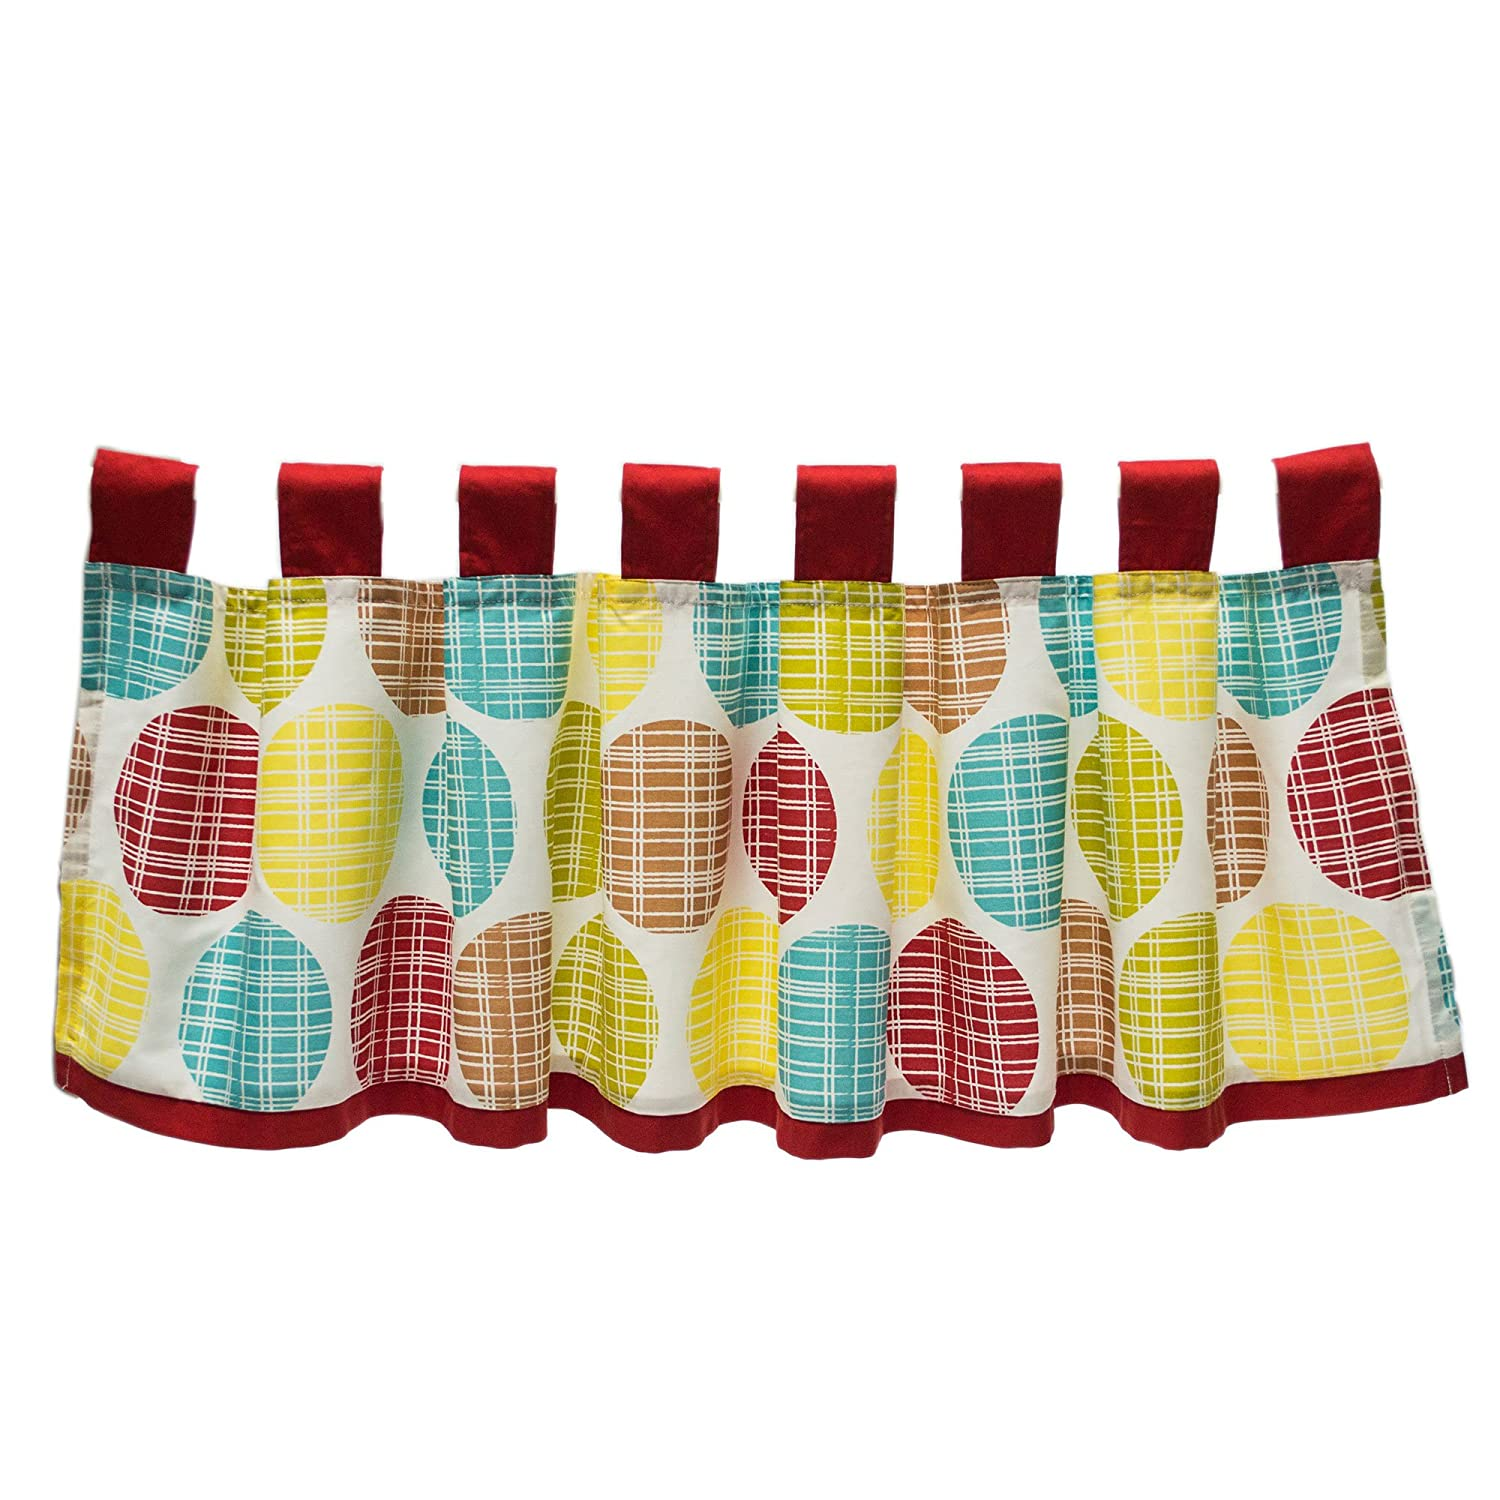 Hopscotch Window Valance by True Baby Farallon Brands WVTBHS-01